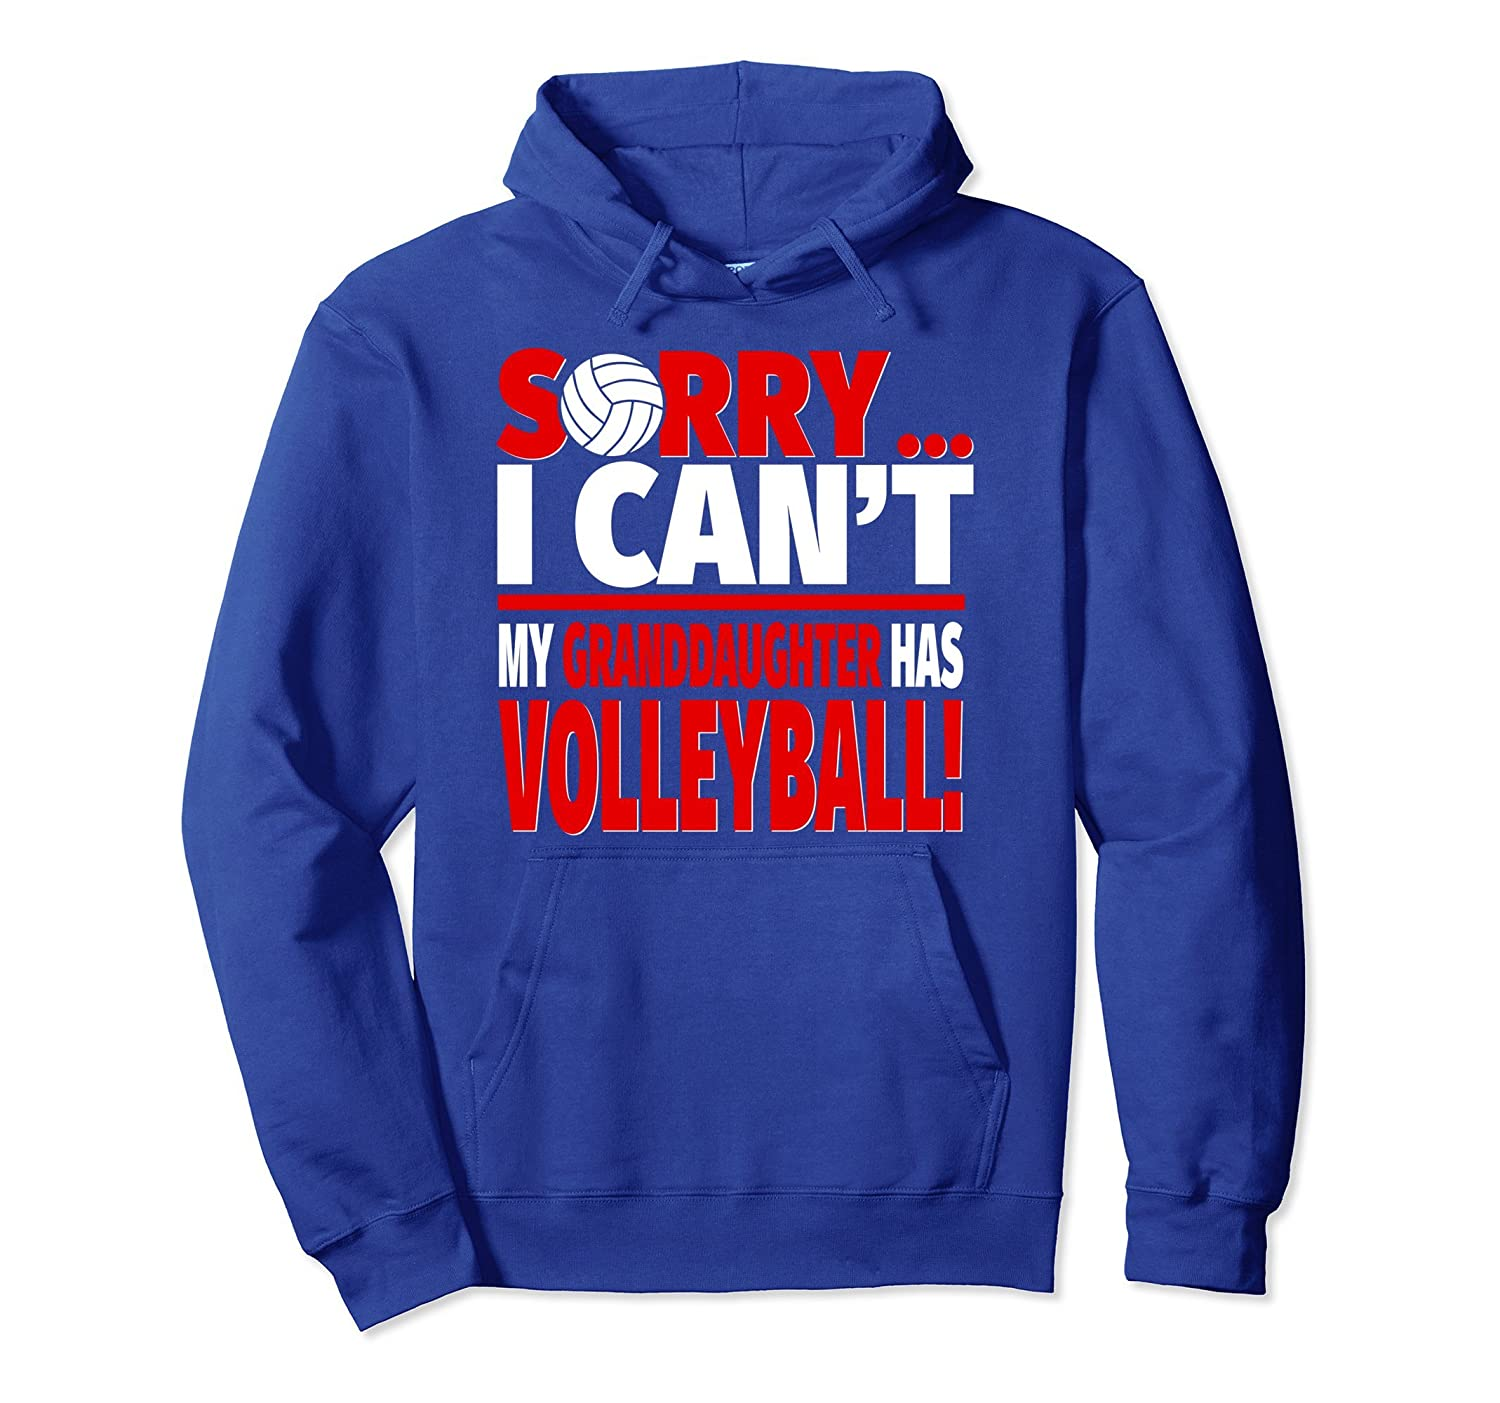 Sorry My Granddaughter Has Volleyball - Grandparent Hoodie-AZP